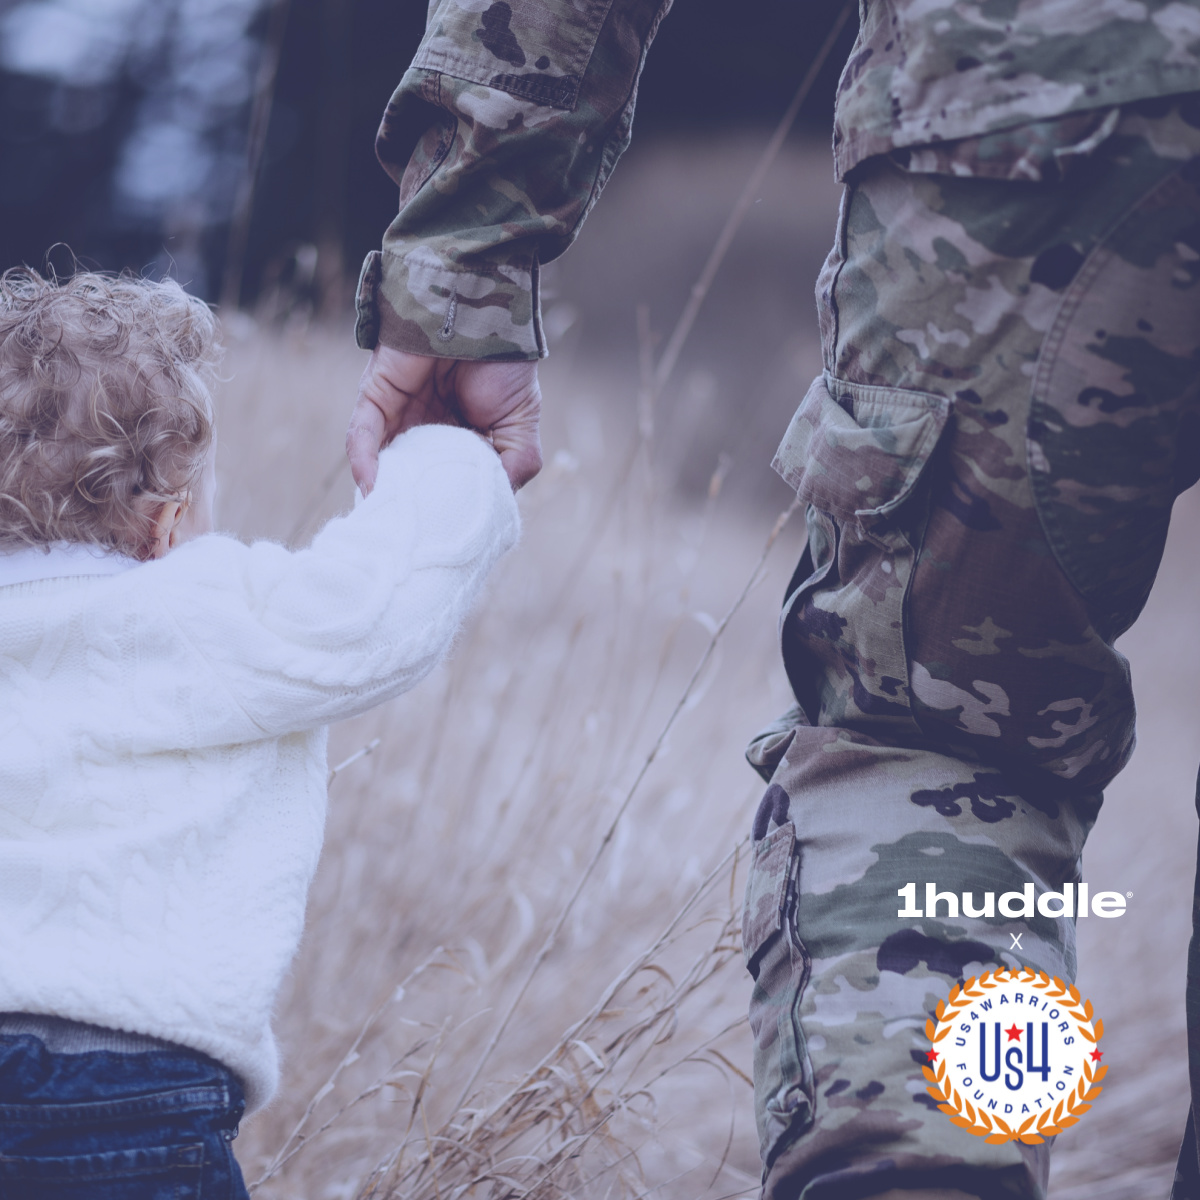 1Huddle Joins Forces with Us4Warriors, Award-Winning, Non-Profit Foundation